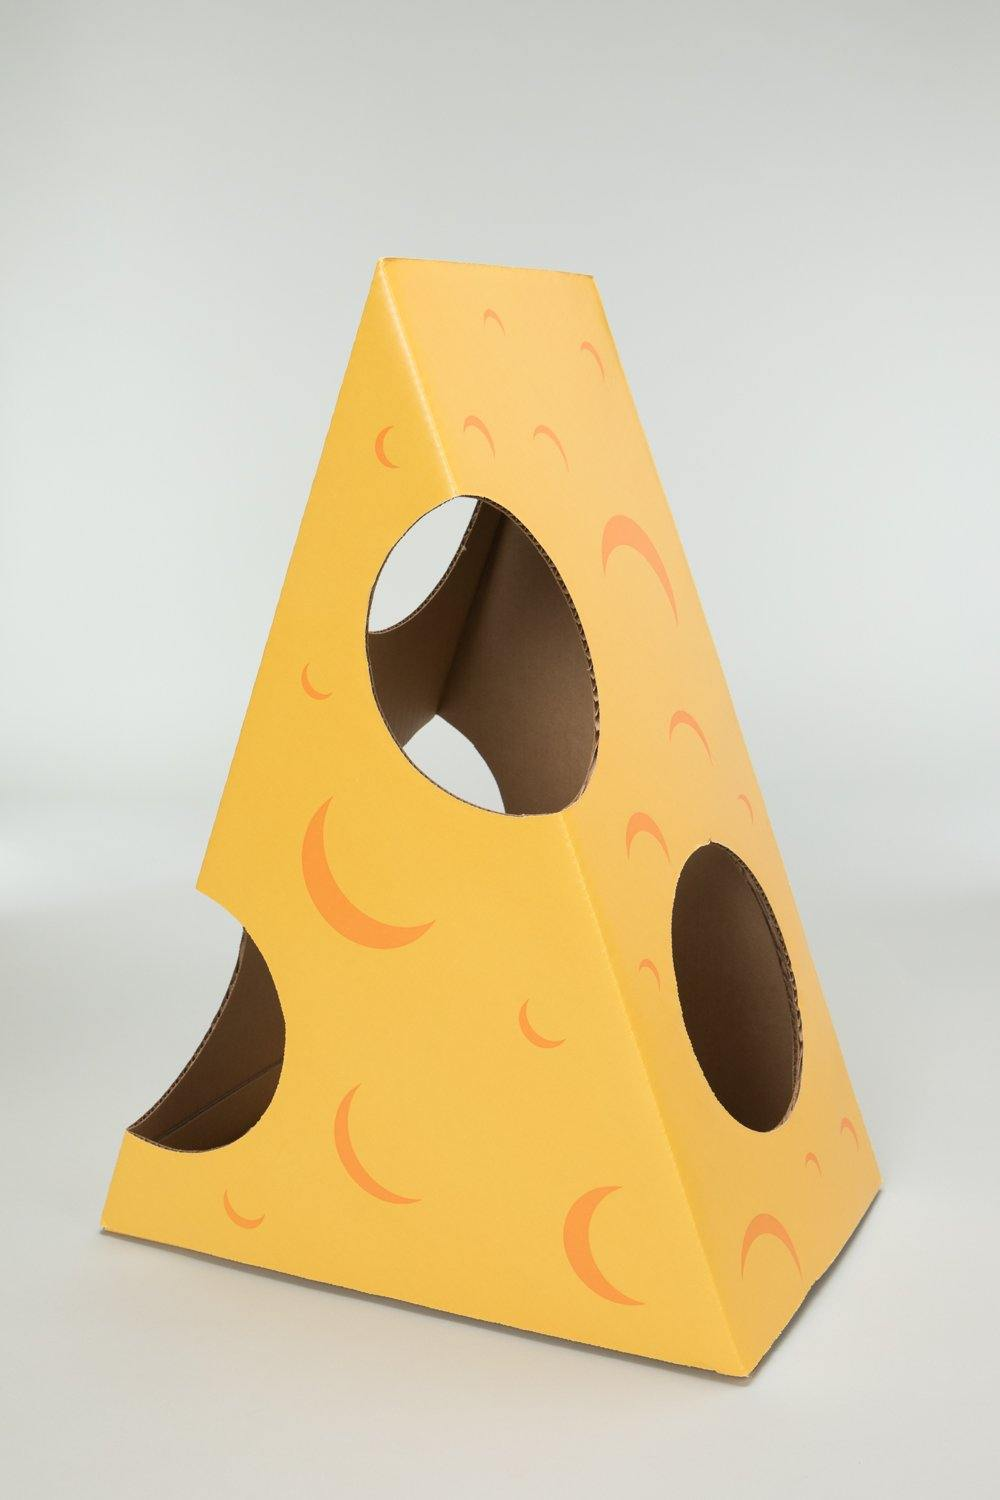 Monster Cheese Wedge cardboard box toy house